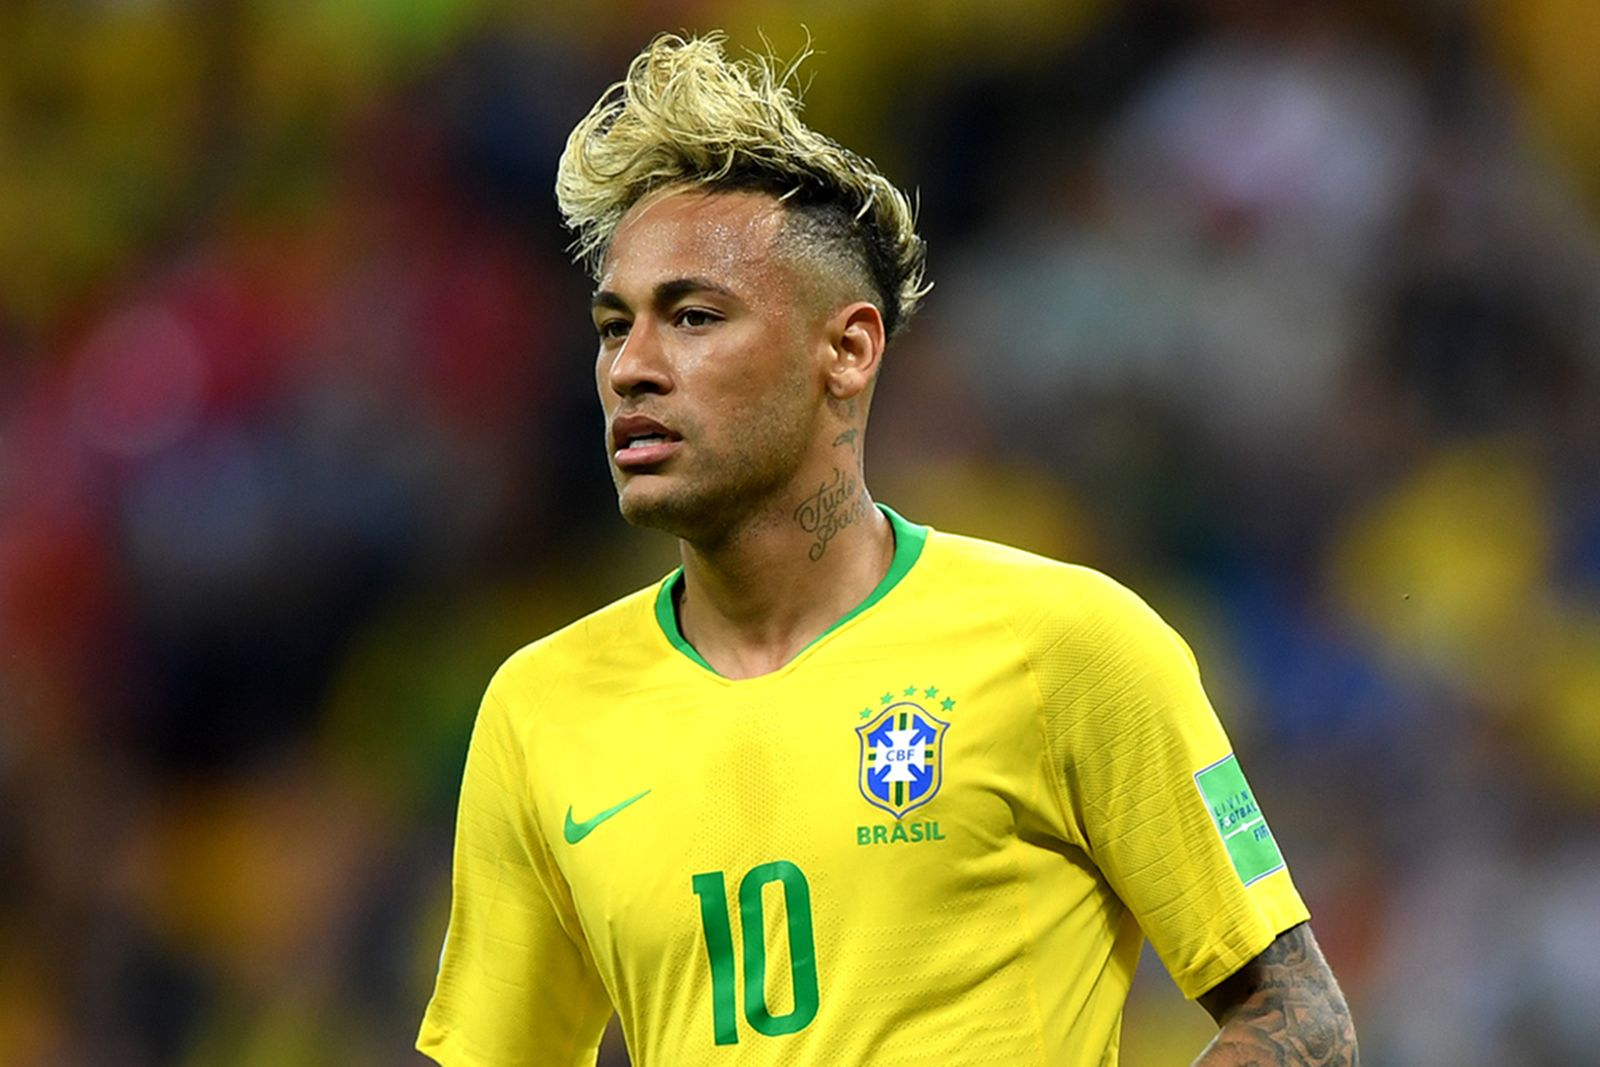 world cup 2018 hairstyles main 2018 FIFA World Cup FIFA World Cup 2018 James Rodriguez